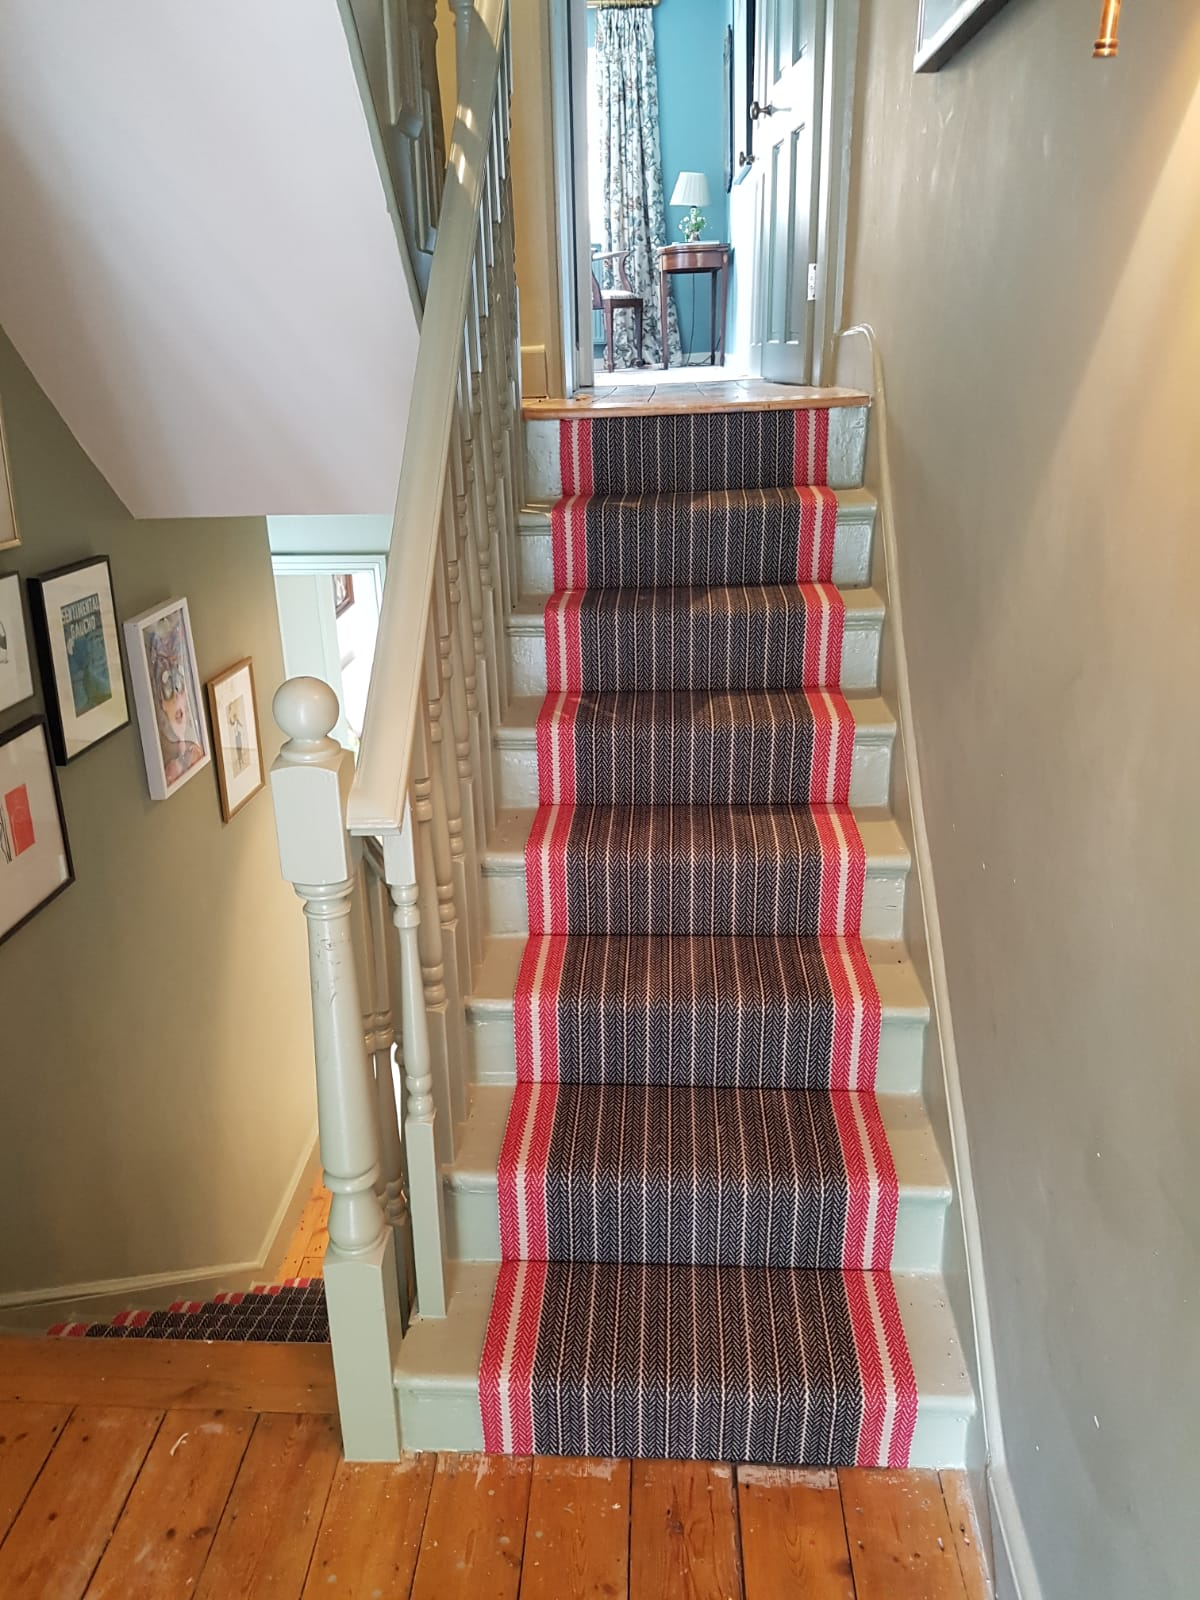 Excellent job by our fitter Barry, beautiful Roger Oates carpet ,making a simple staircase stylish